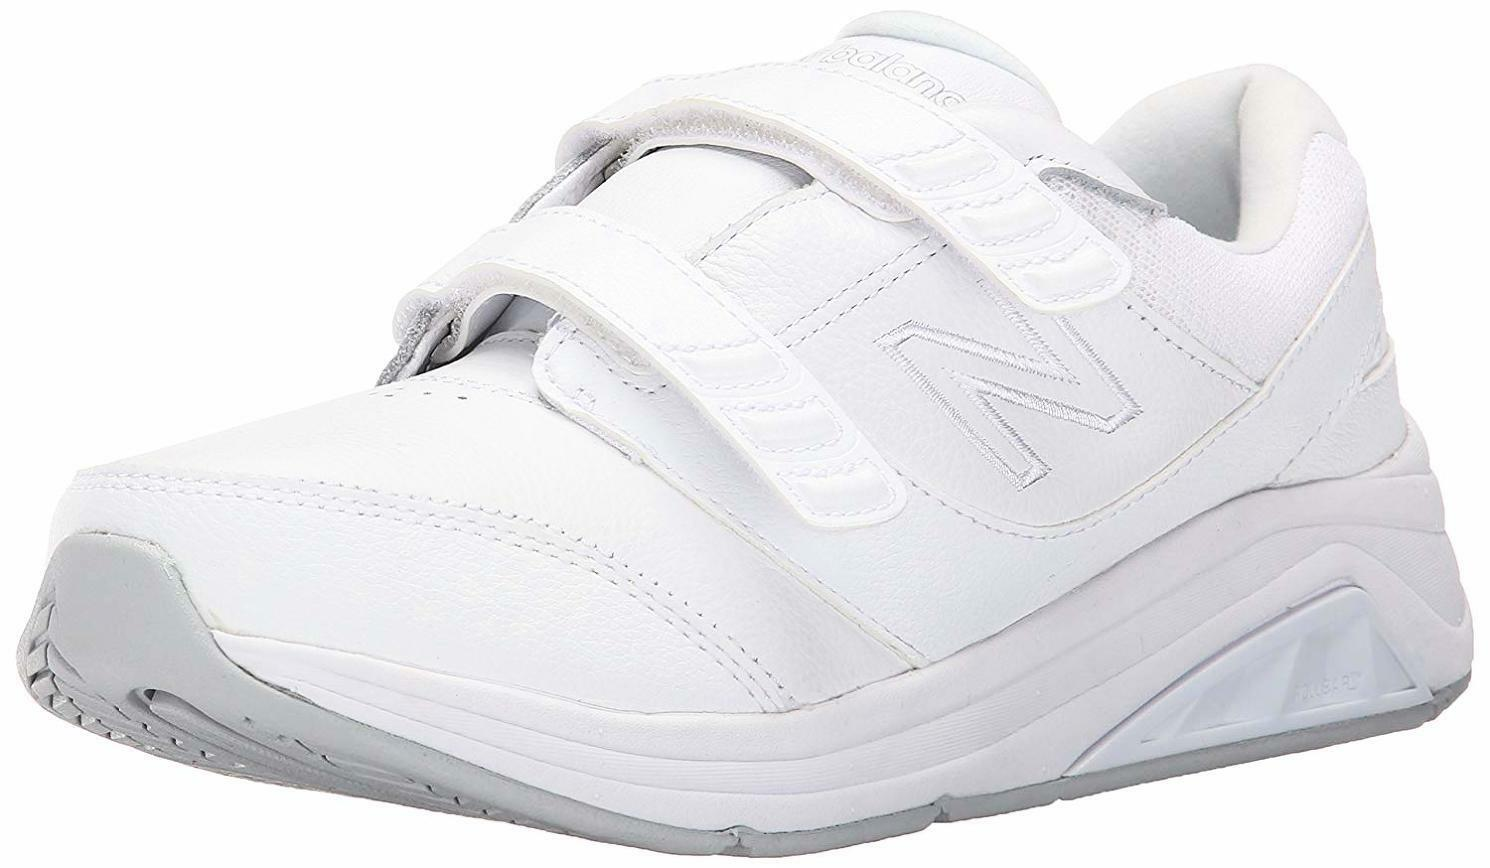 New Balance Women's Size 13 Walking shoes shoes shoes White WW928HW2 New a6375e